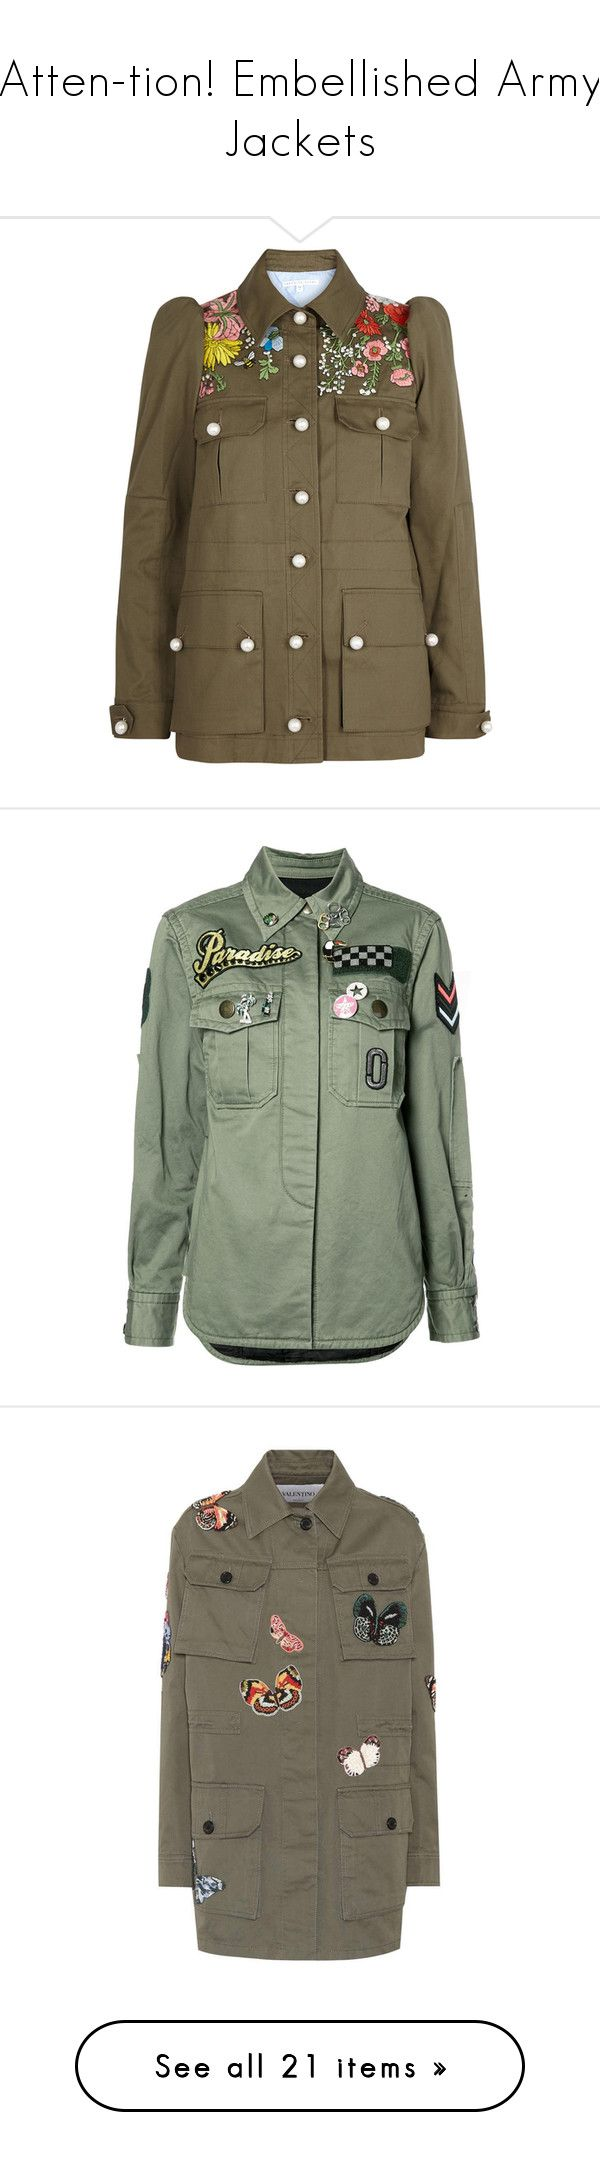 Atten Tion Embellished Army Jackets By Polyvore Editorial Liked On Polyvore Featuring Embellishedarmyjackets Outer Jackets Embroidery Jackets Army Jacket [ 2172 x 600 Pixel ]